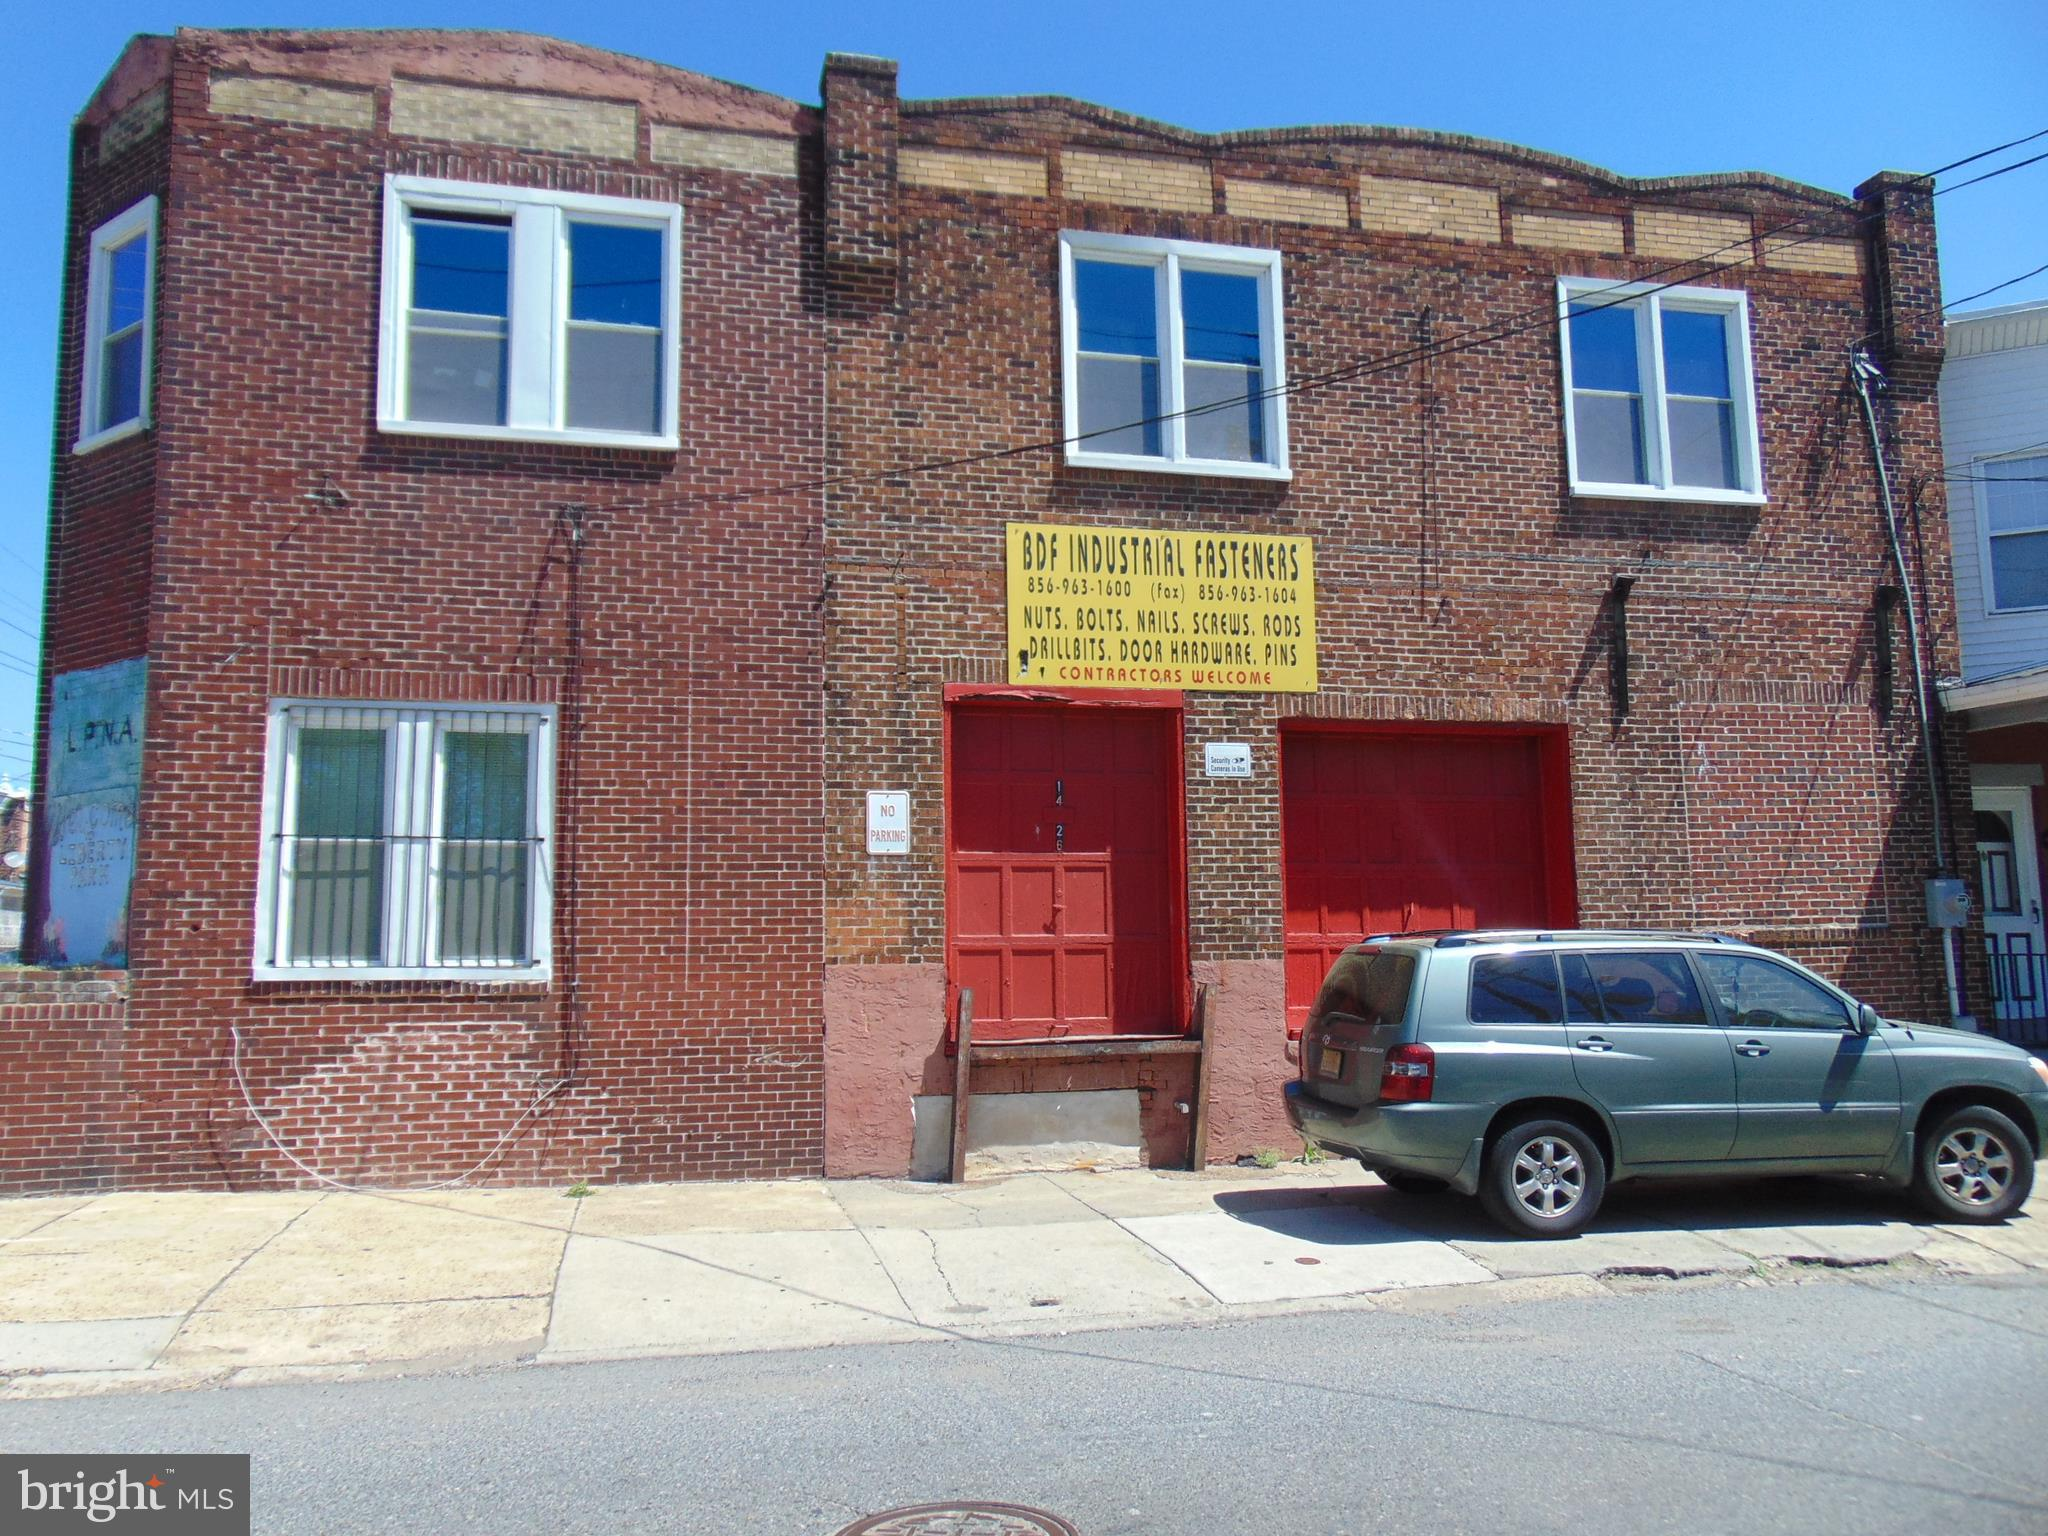 1426 9TH, CAMDEN, NJ 08104